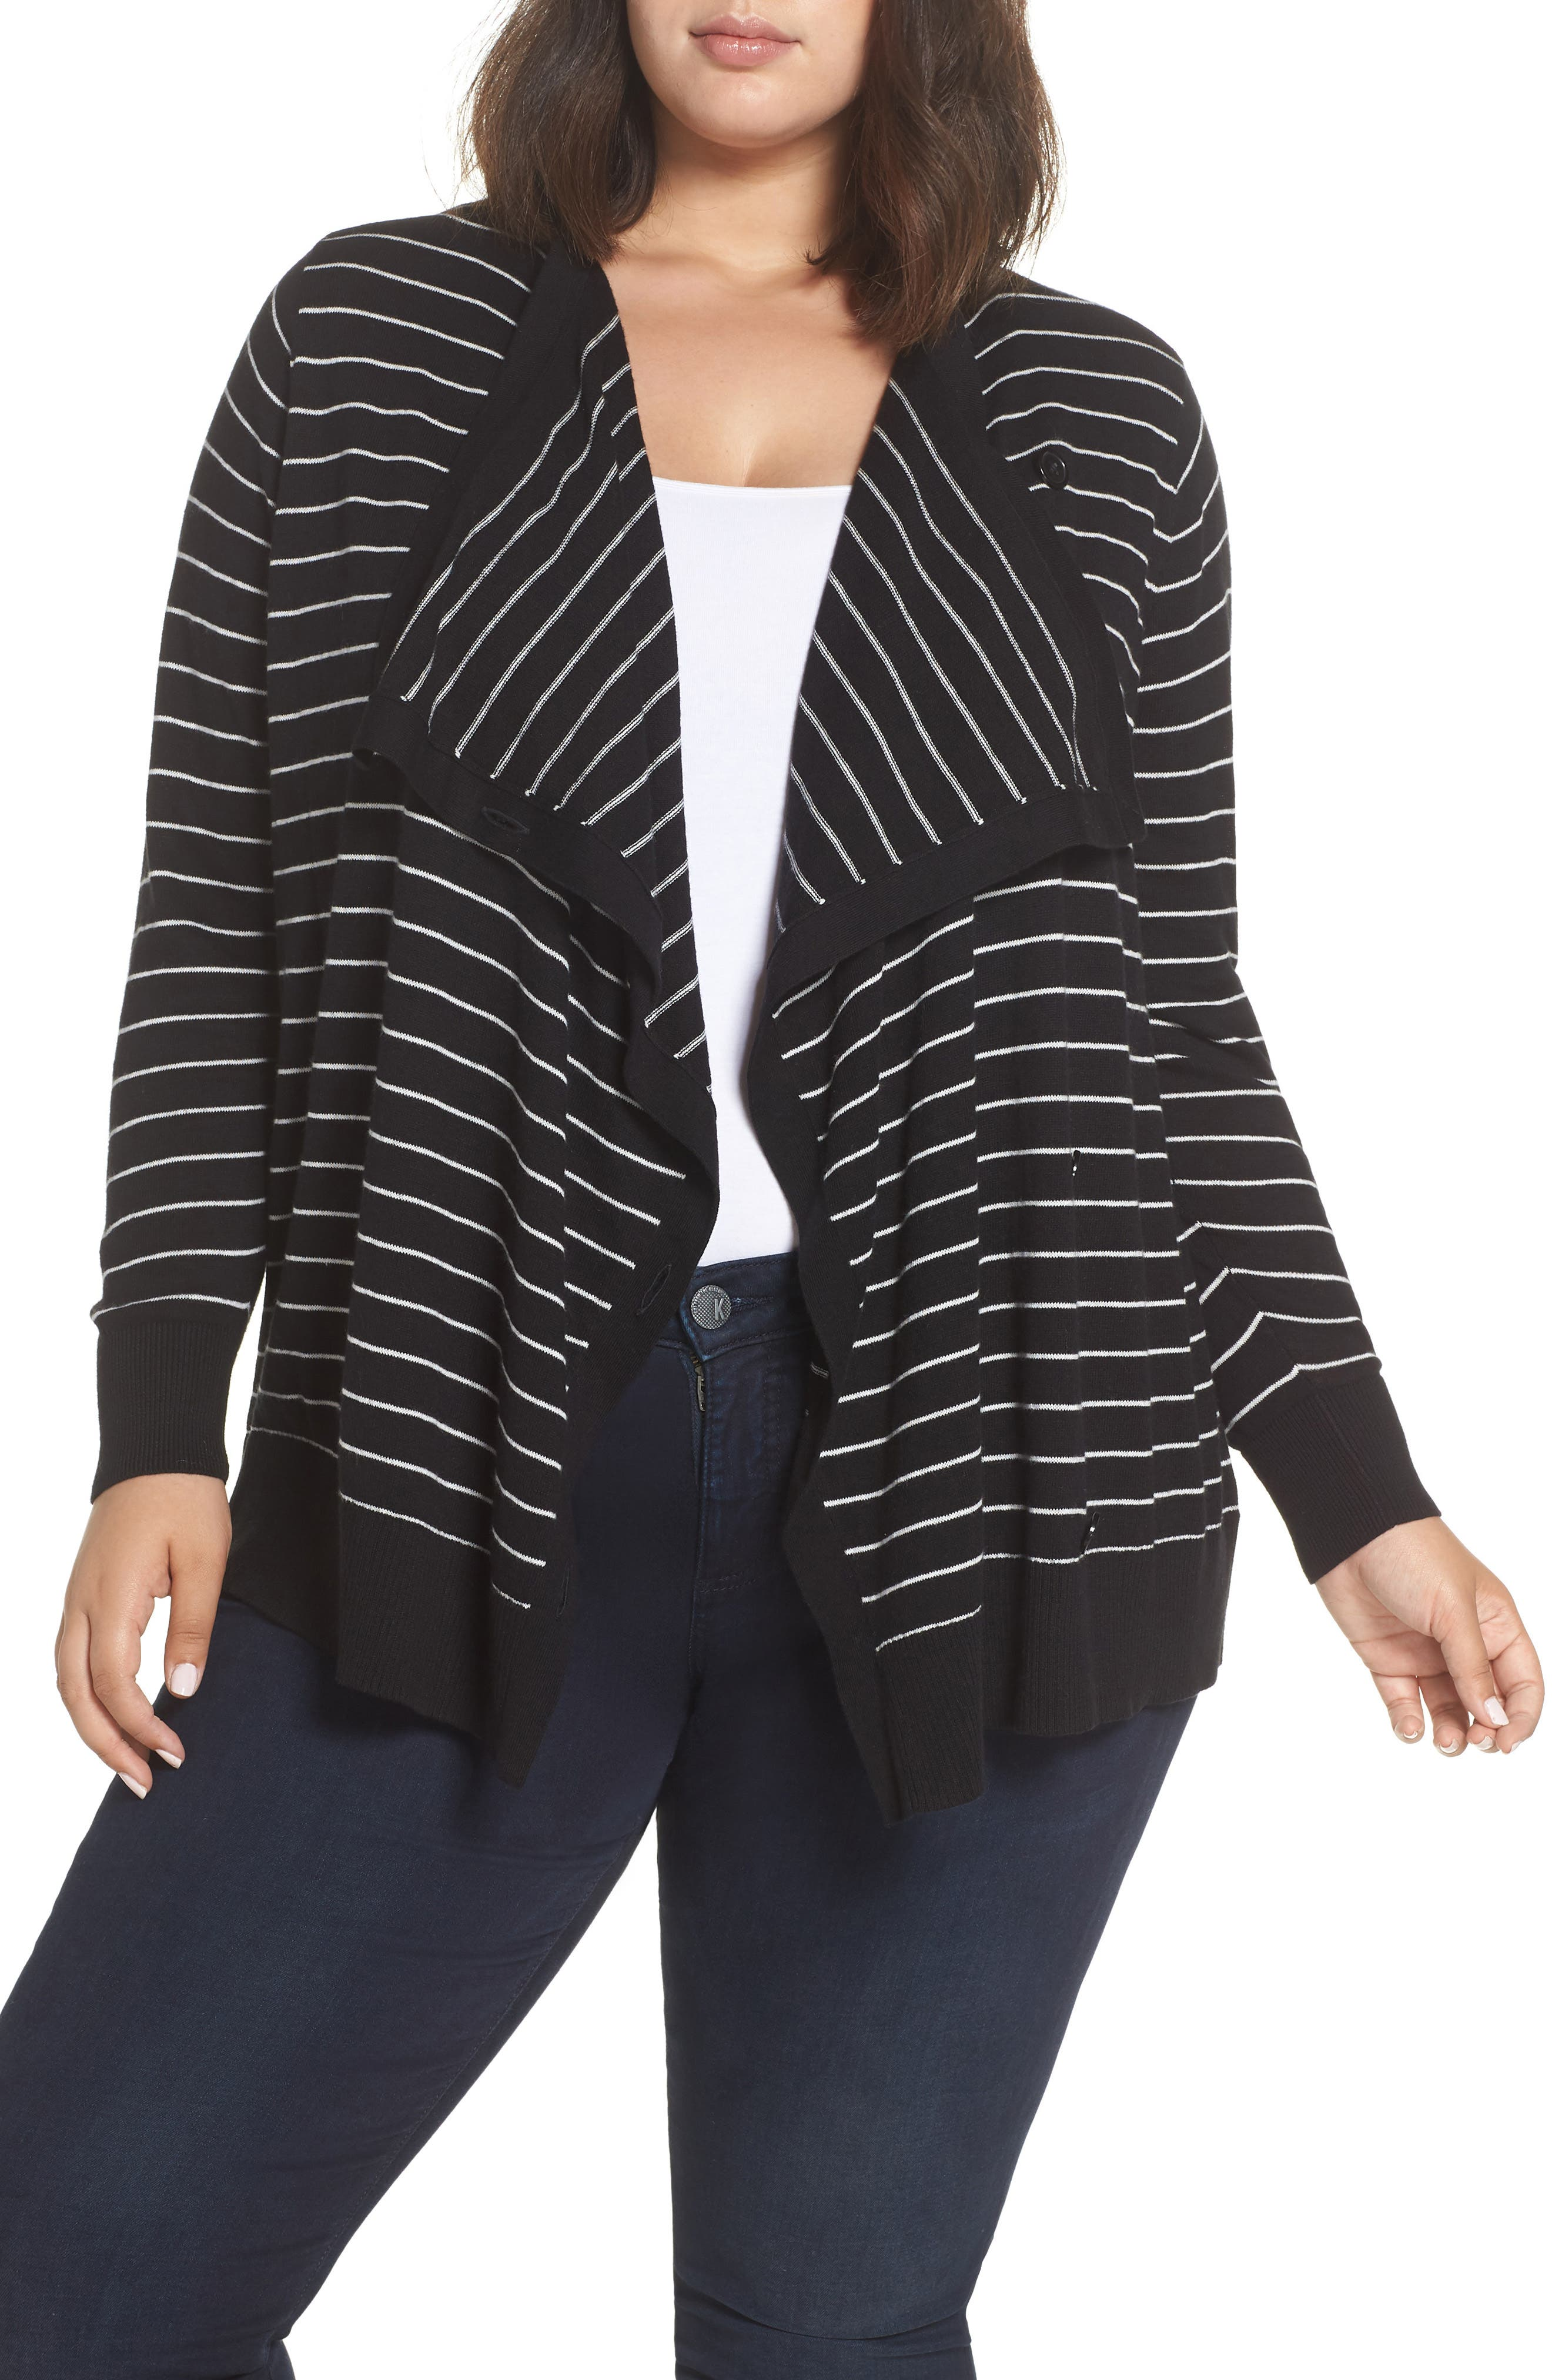 Button-Up Waterfall Cardigan,                             Main thumbnail 1, color,                             BLACK- IVORY DELIA STRIPE